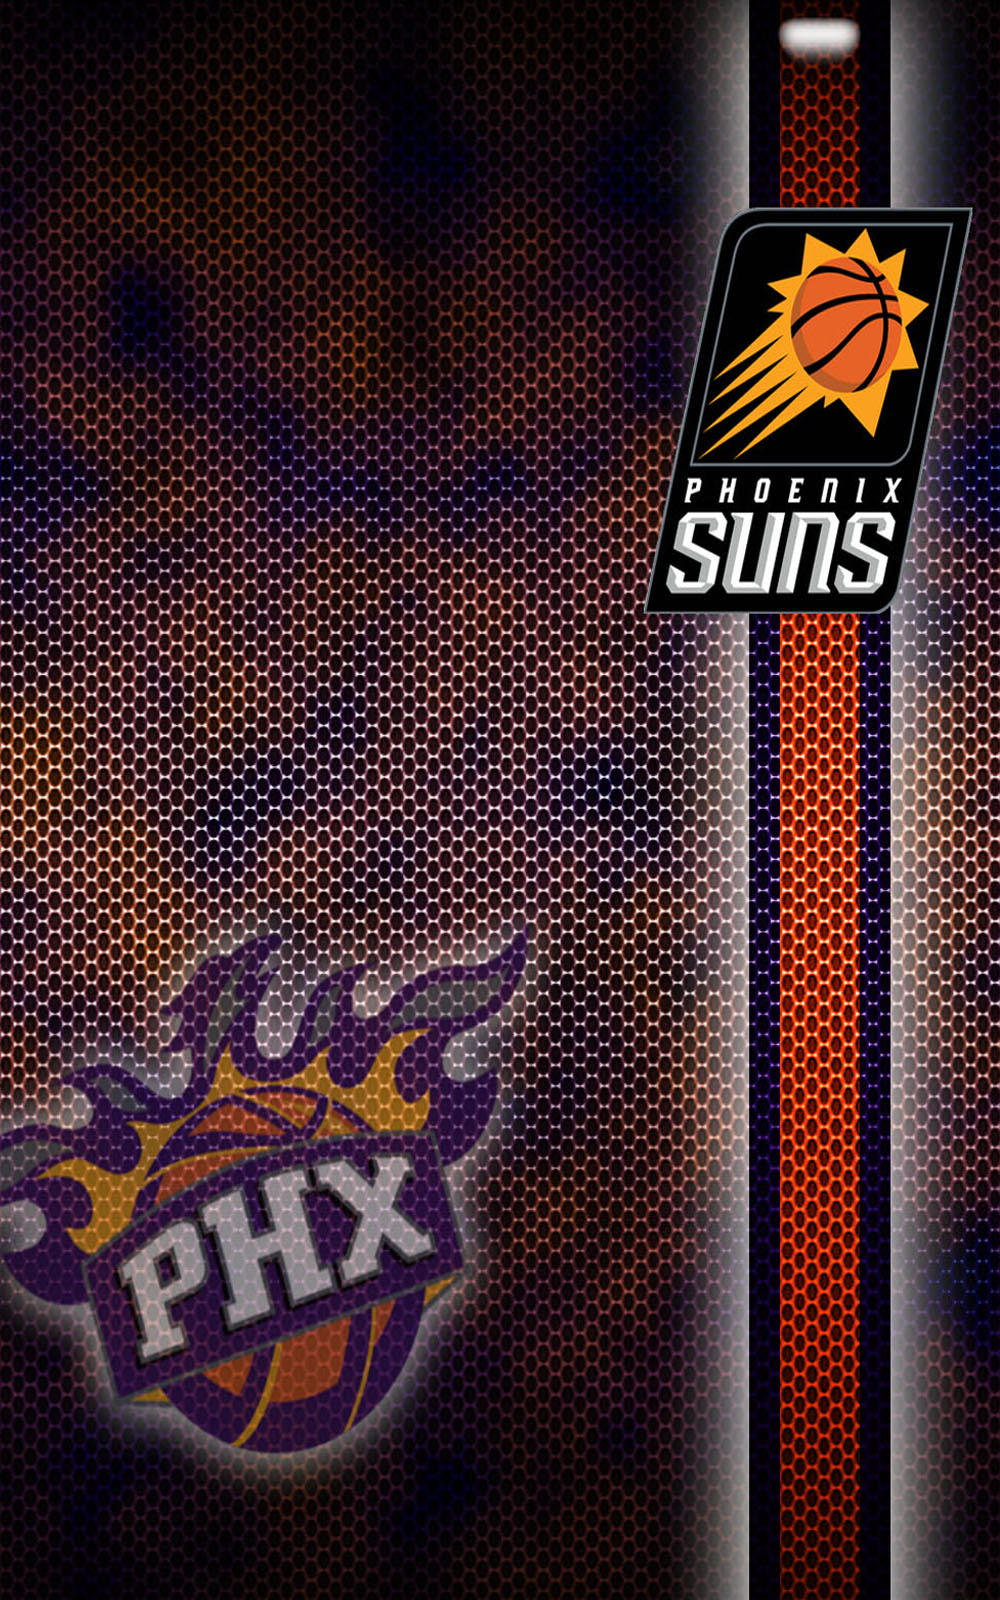 Career Quotes Wallpapers Phoenix Suns Download Free Hd Mobile Wallpapers